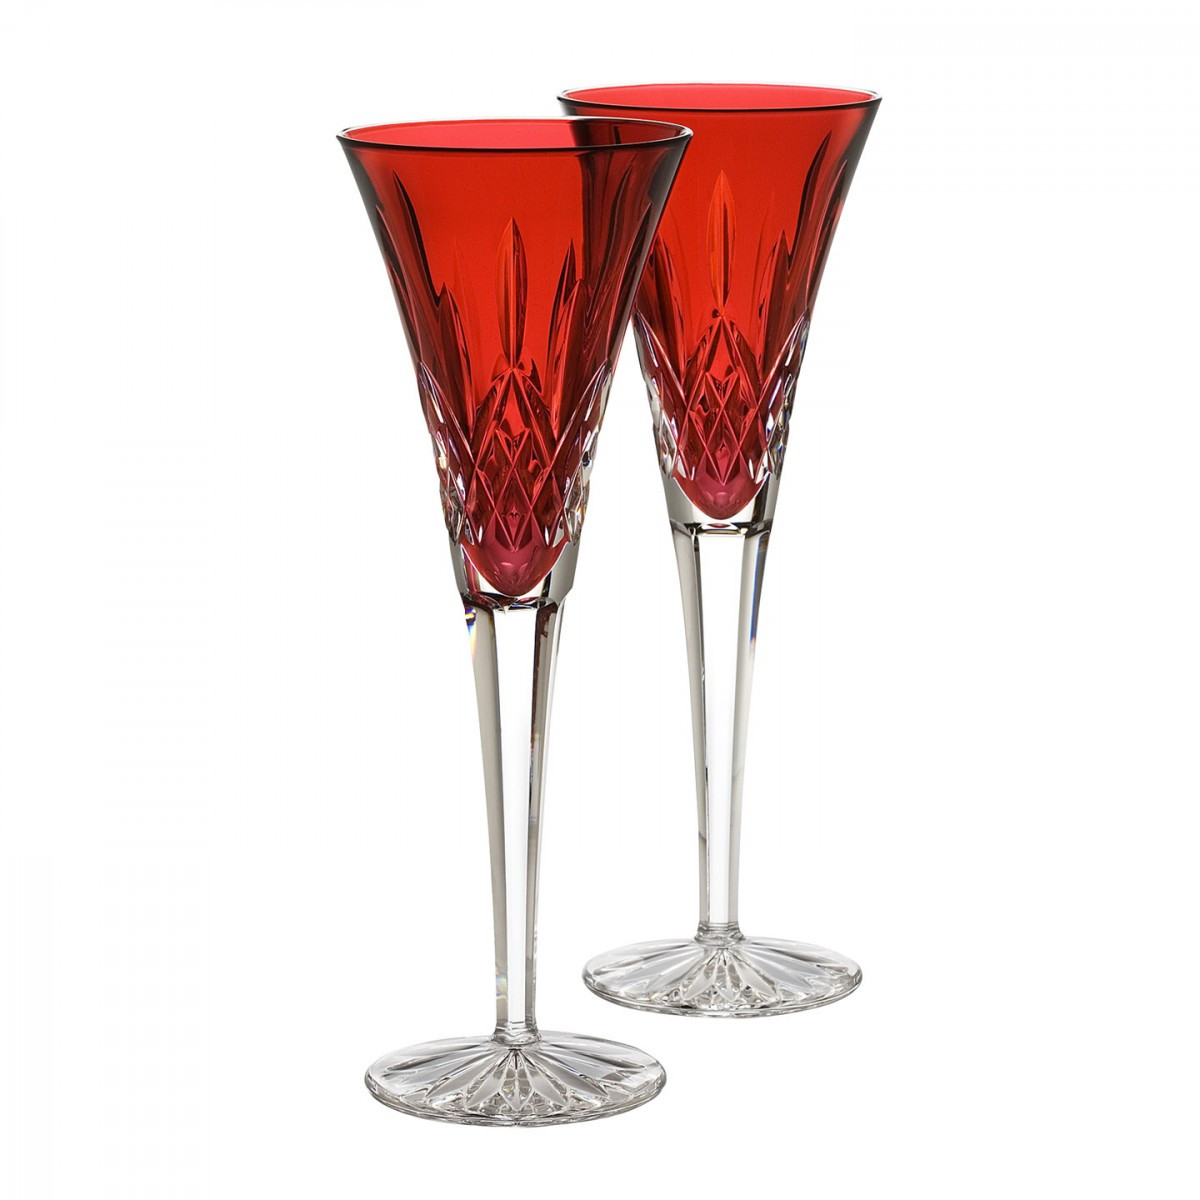 marquis by waterford shelton vase 12 of lismore crimson flute pair discontinued waterford us intended for lismore crimson flute pair discontinued